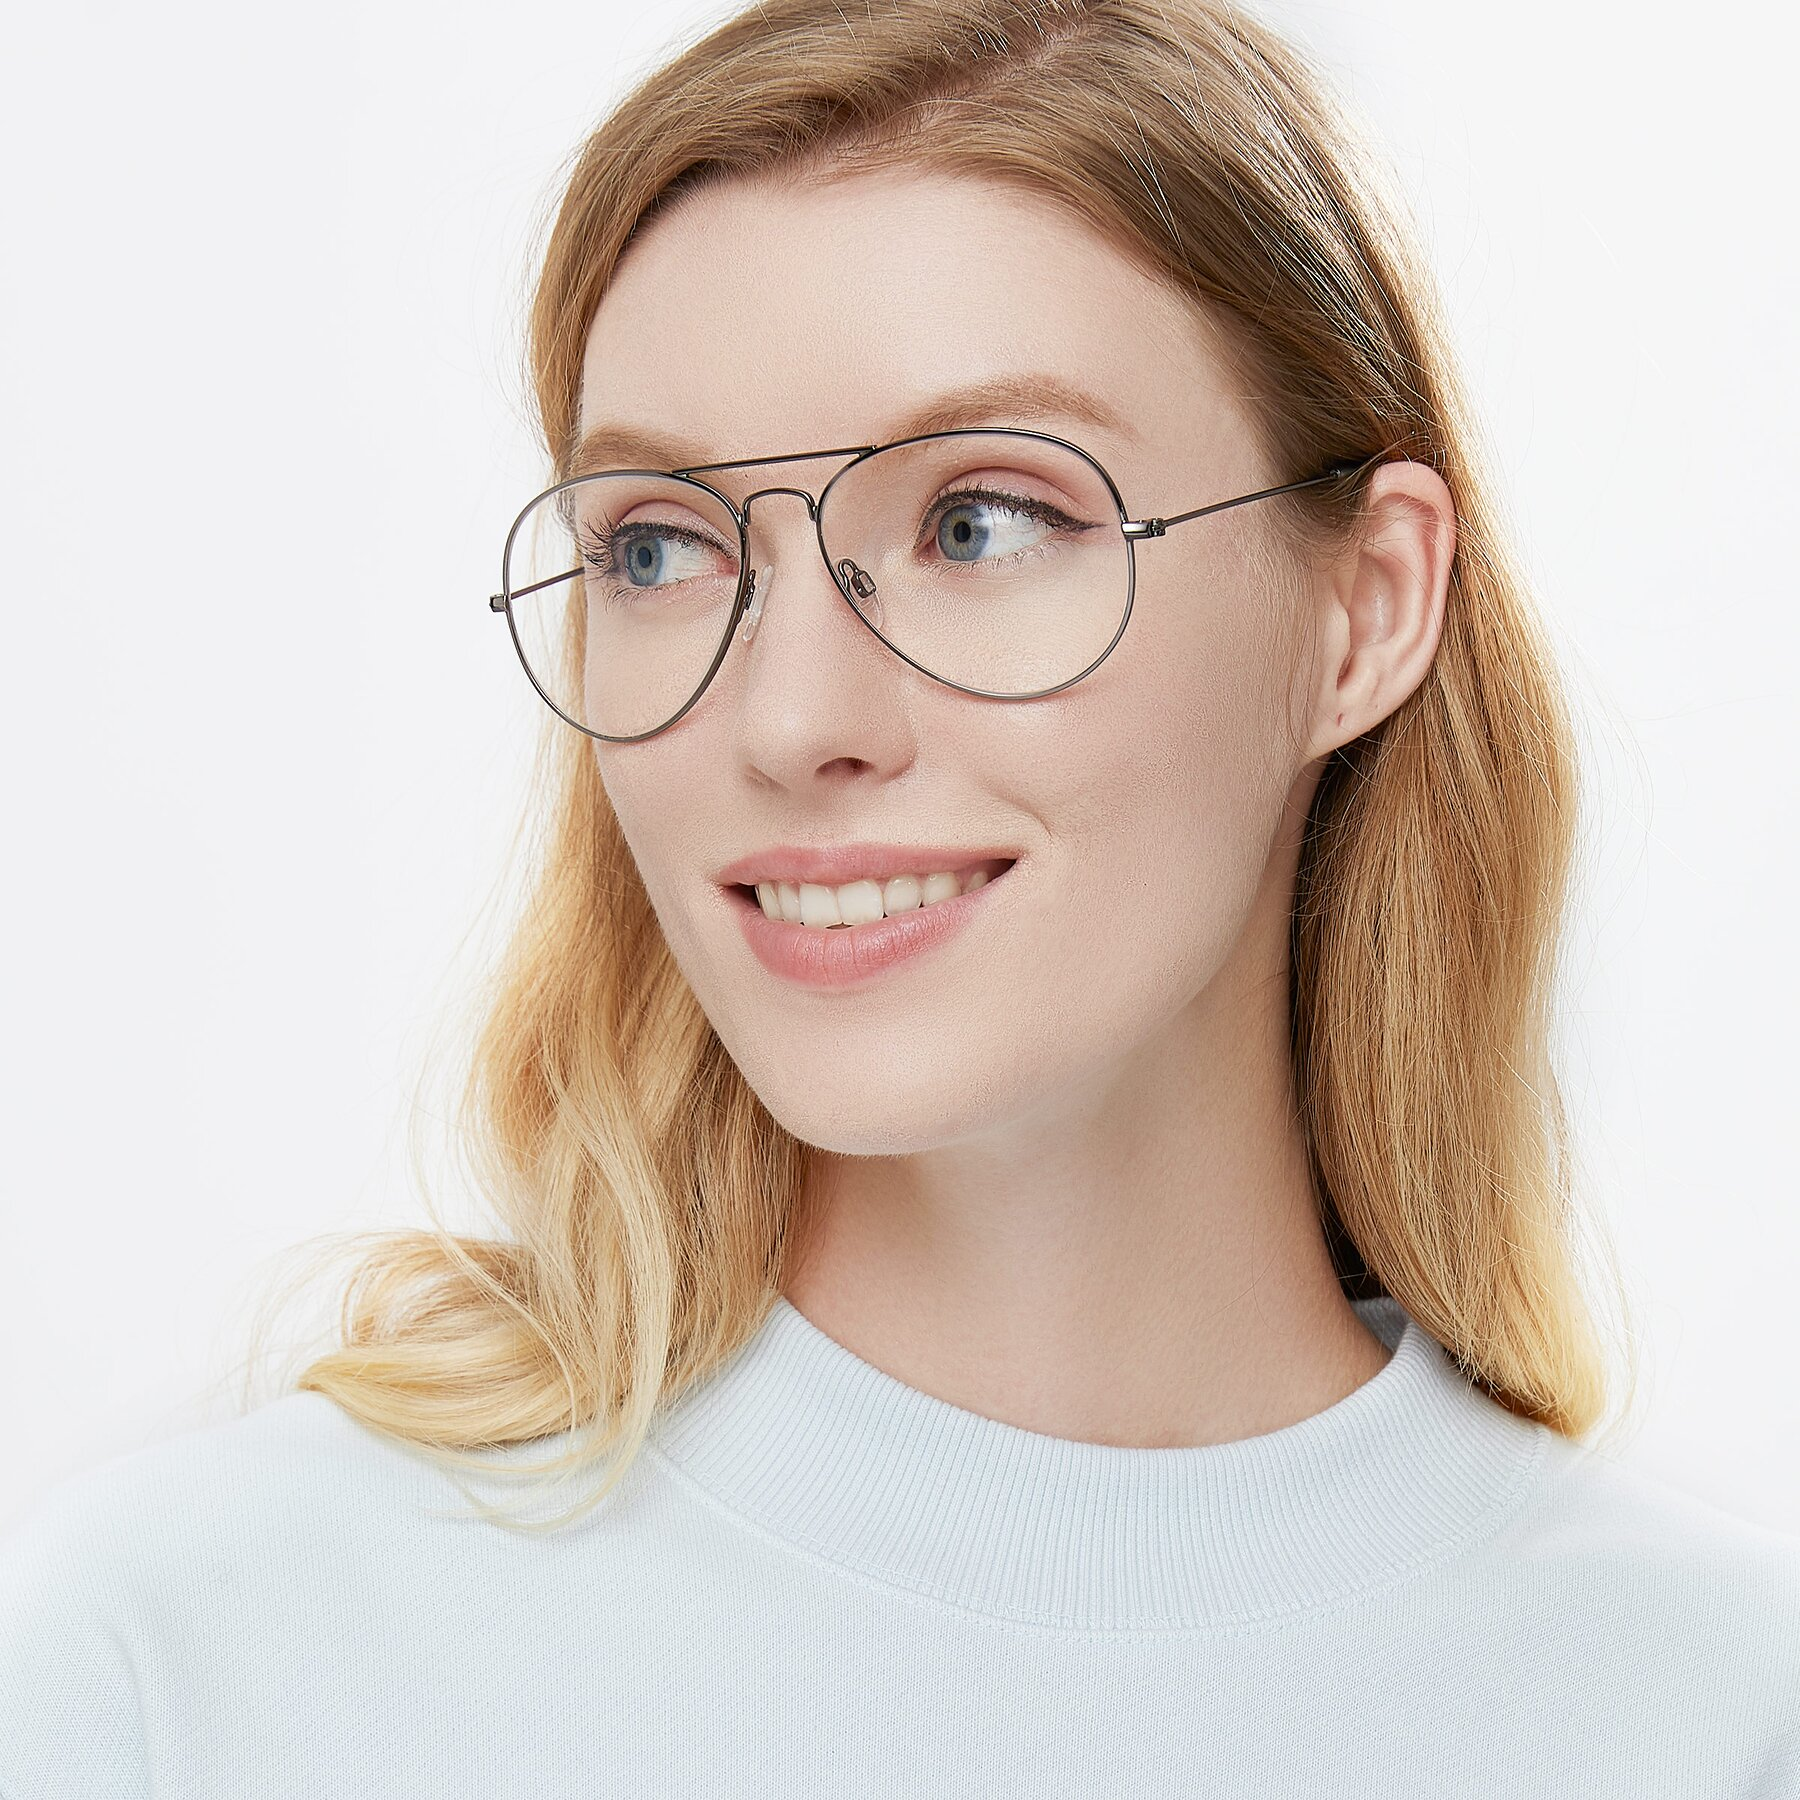 Women's lifestyle photography of Yesterday in Gunmetal with Clear Eyeglass Lenses